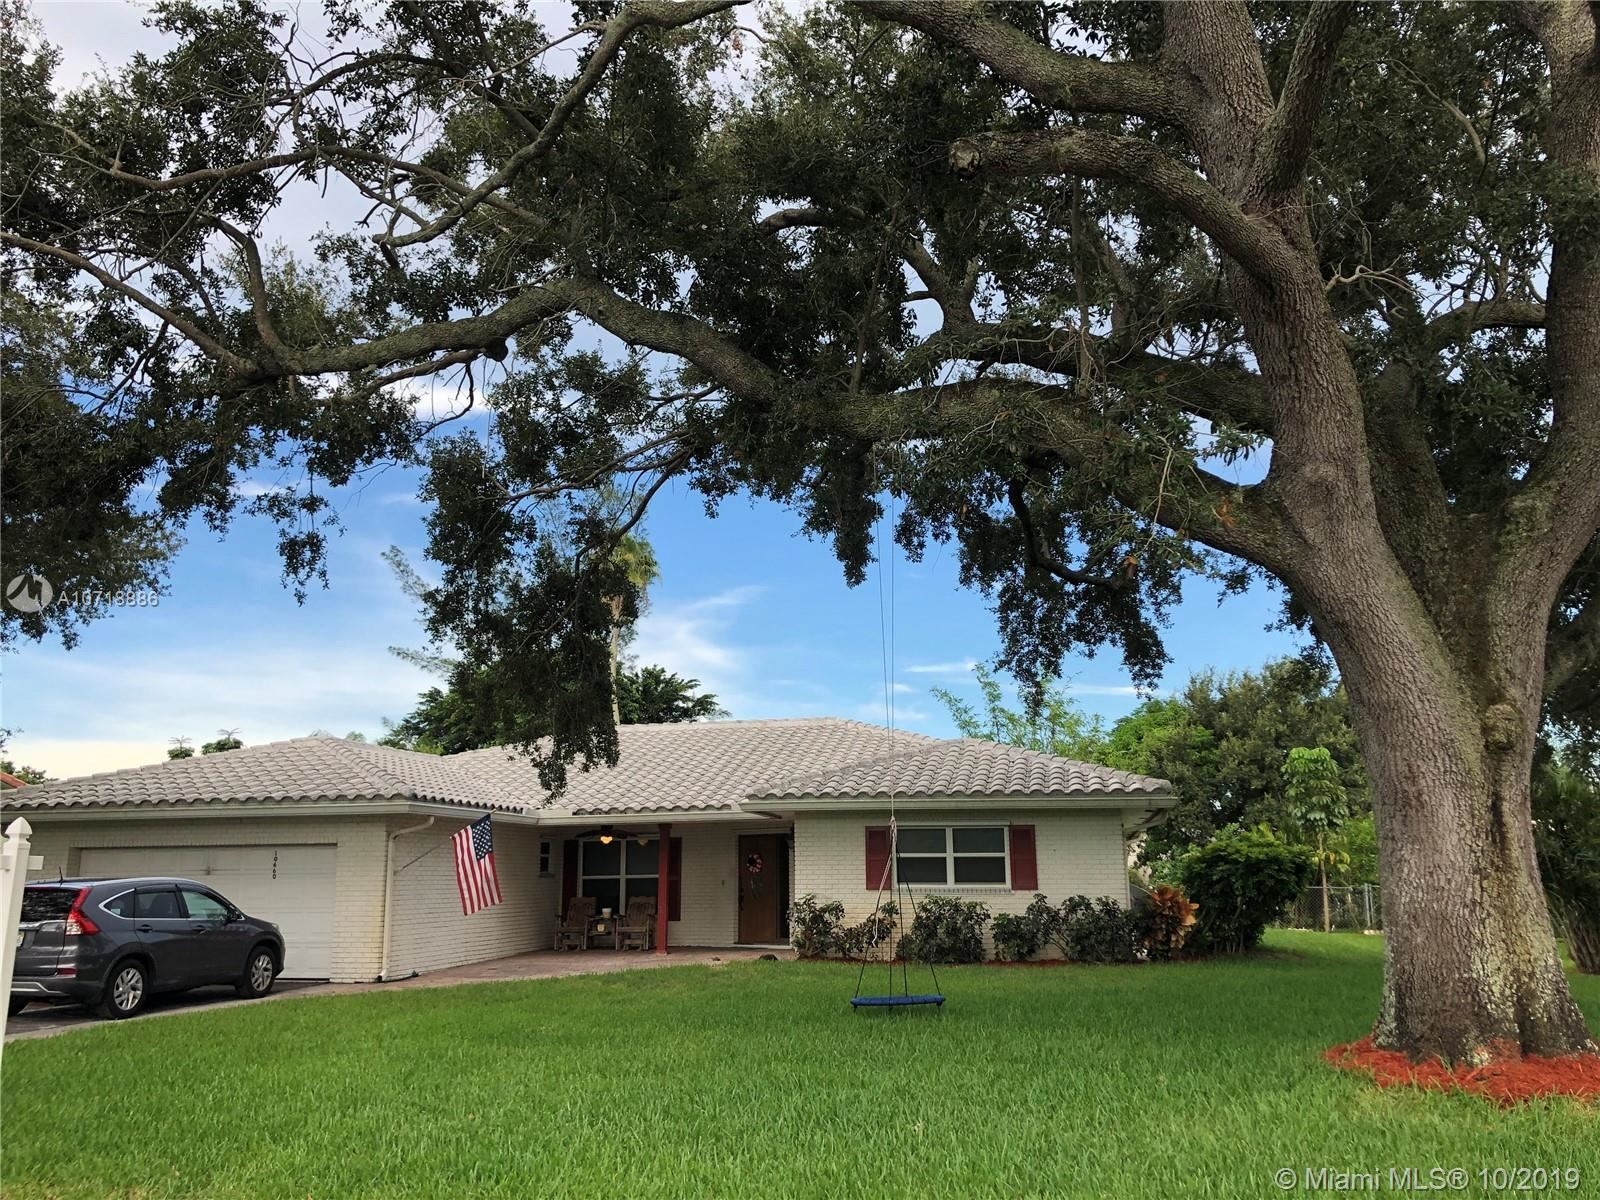 10660 NW 38th St, Coral Springs, FL 33065 - MLS#: A10718886